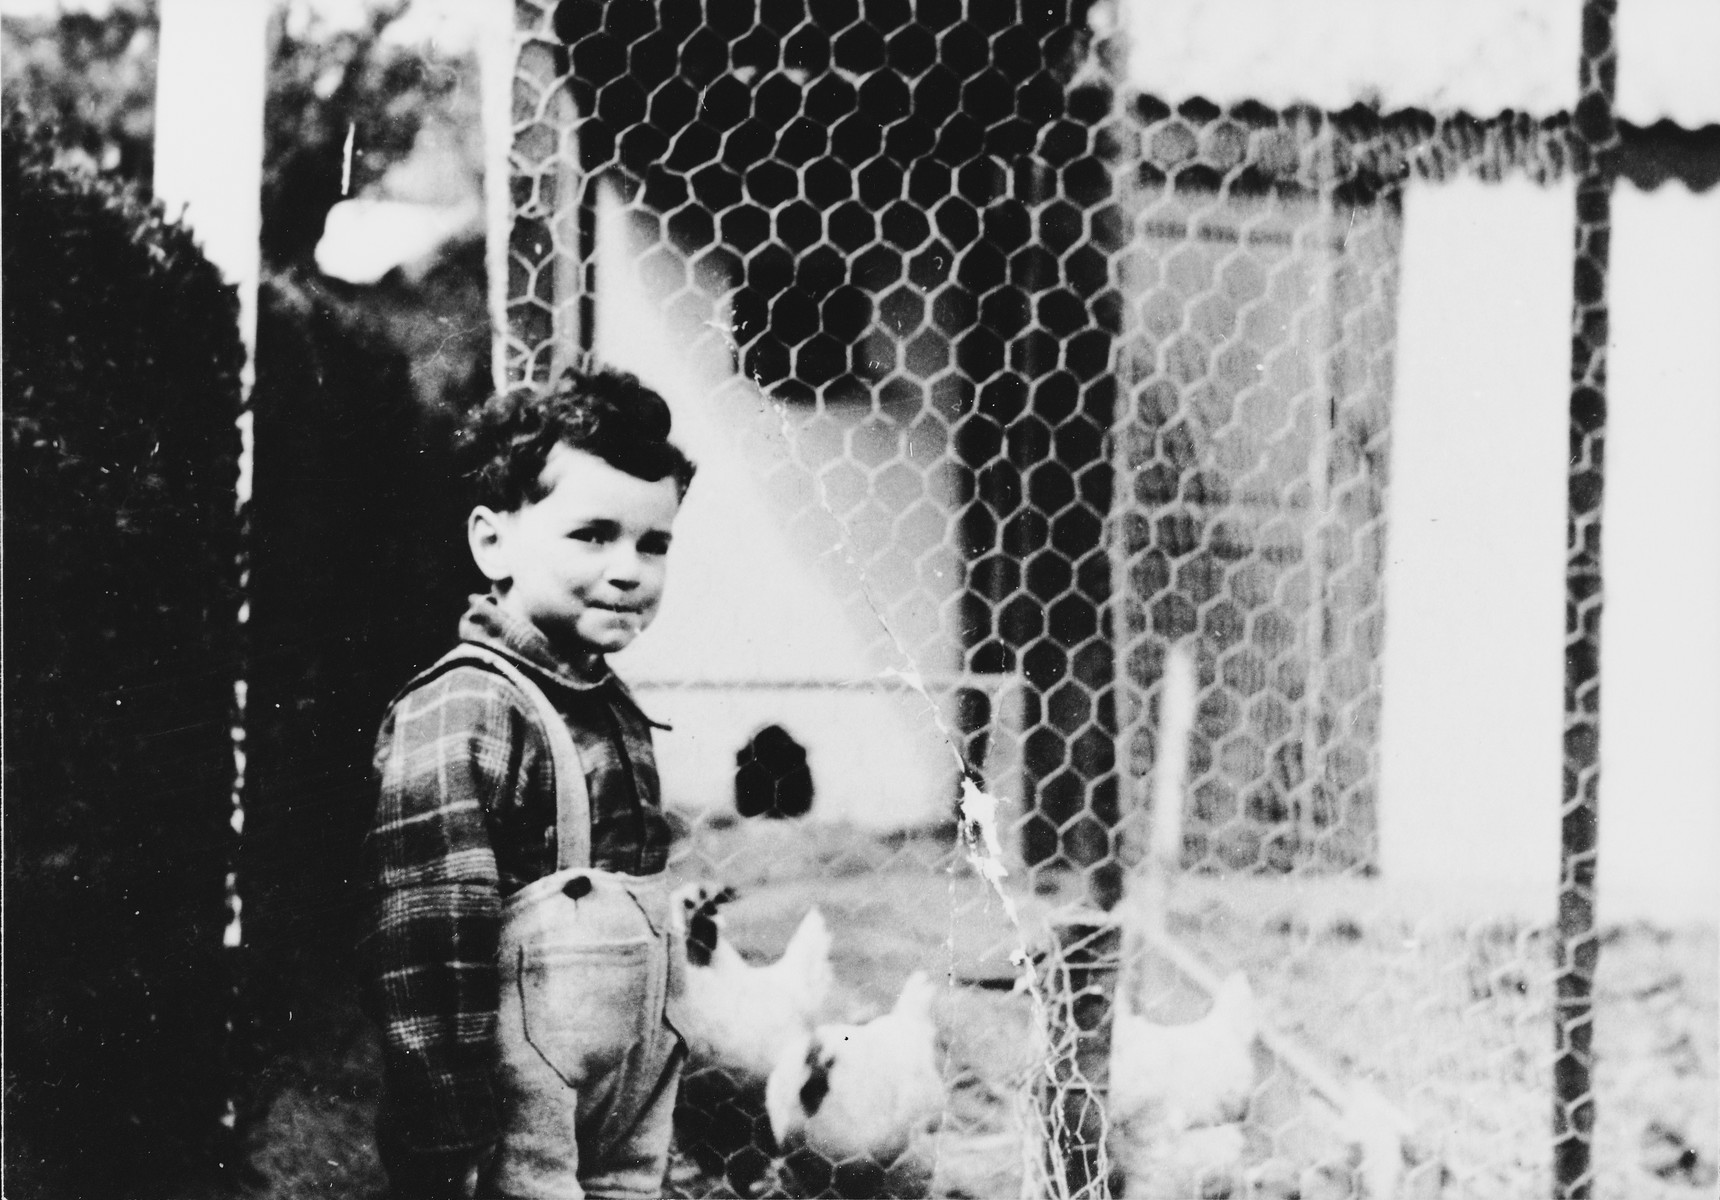 A little boy, who had been hidden by Andree Geulen, poses next to a chicken coop on a farm.